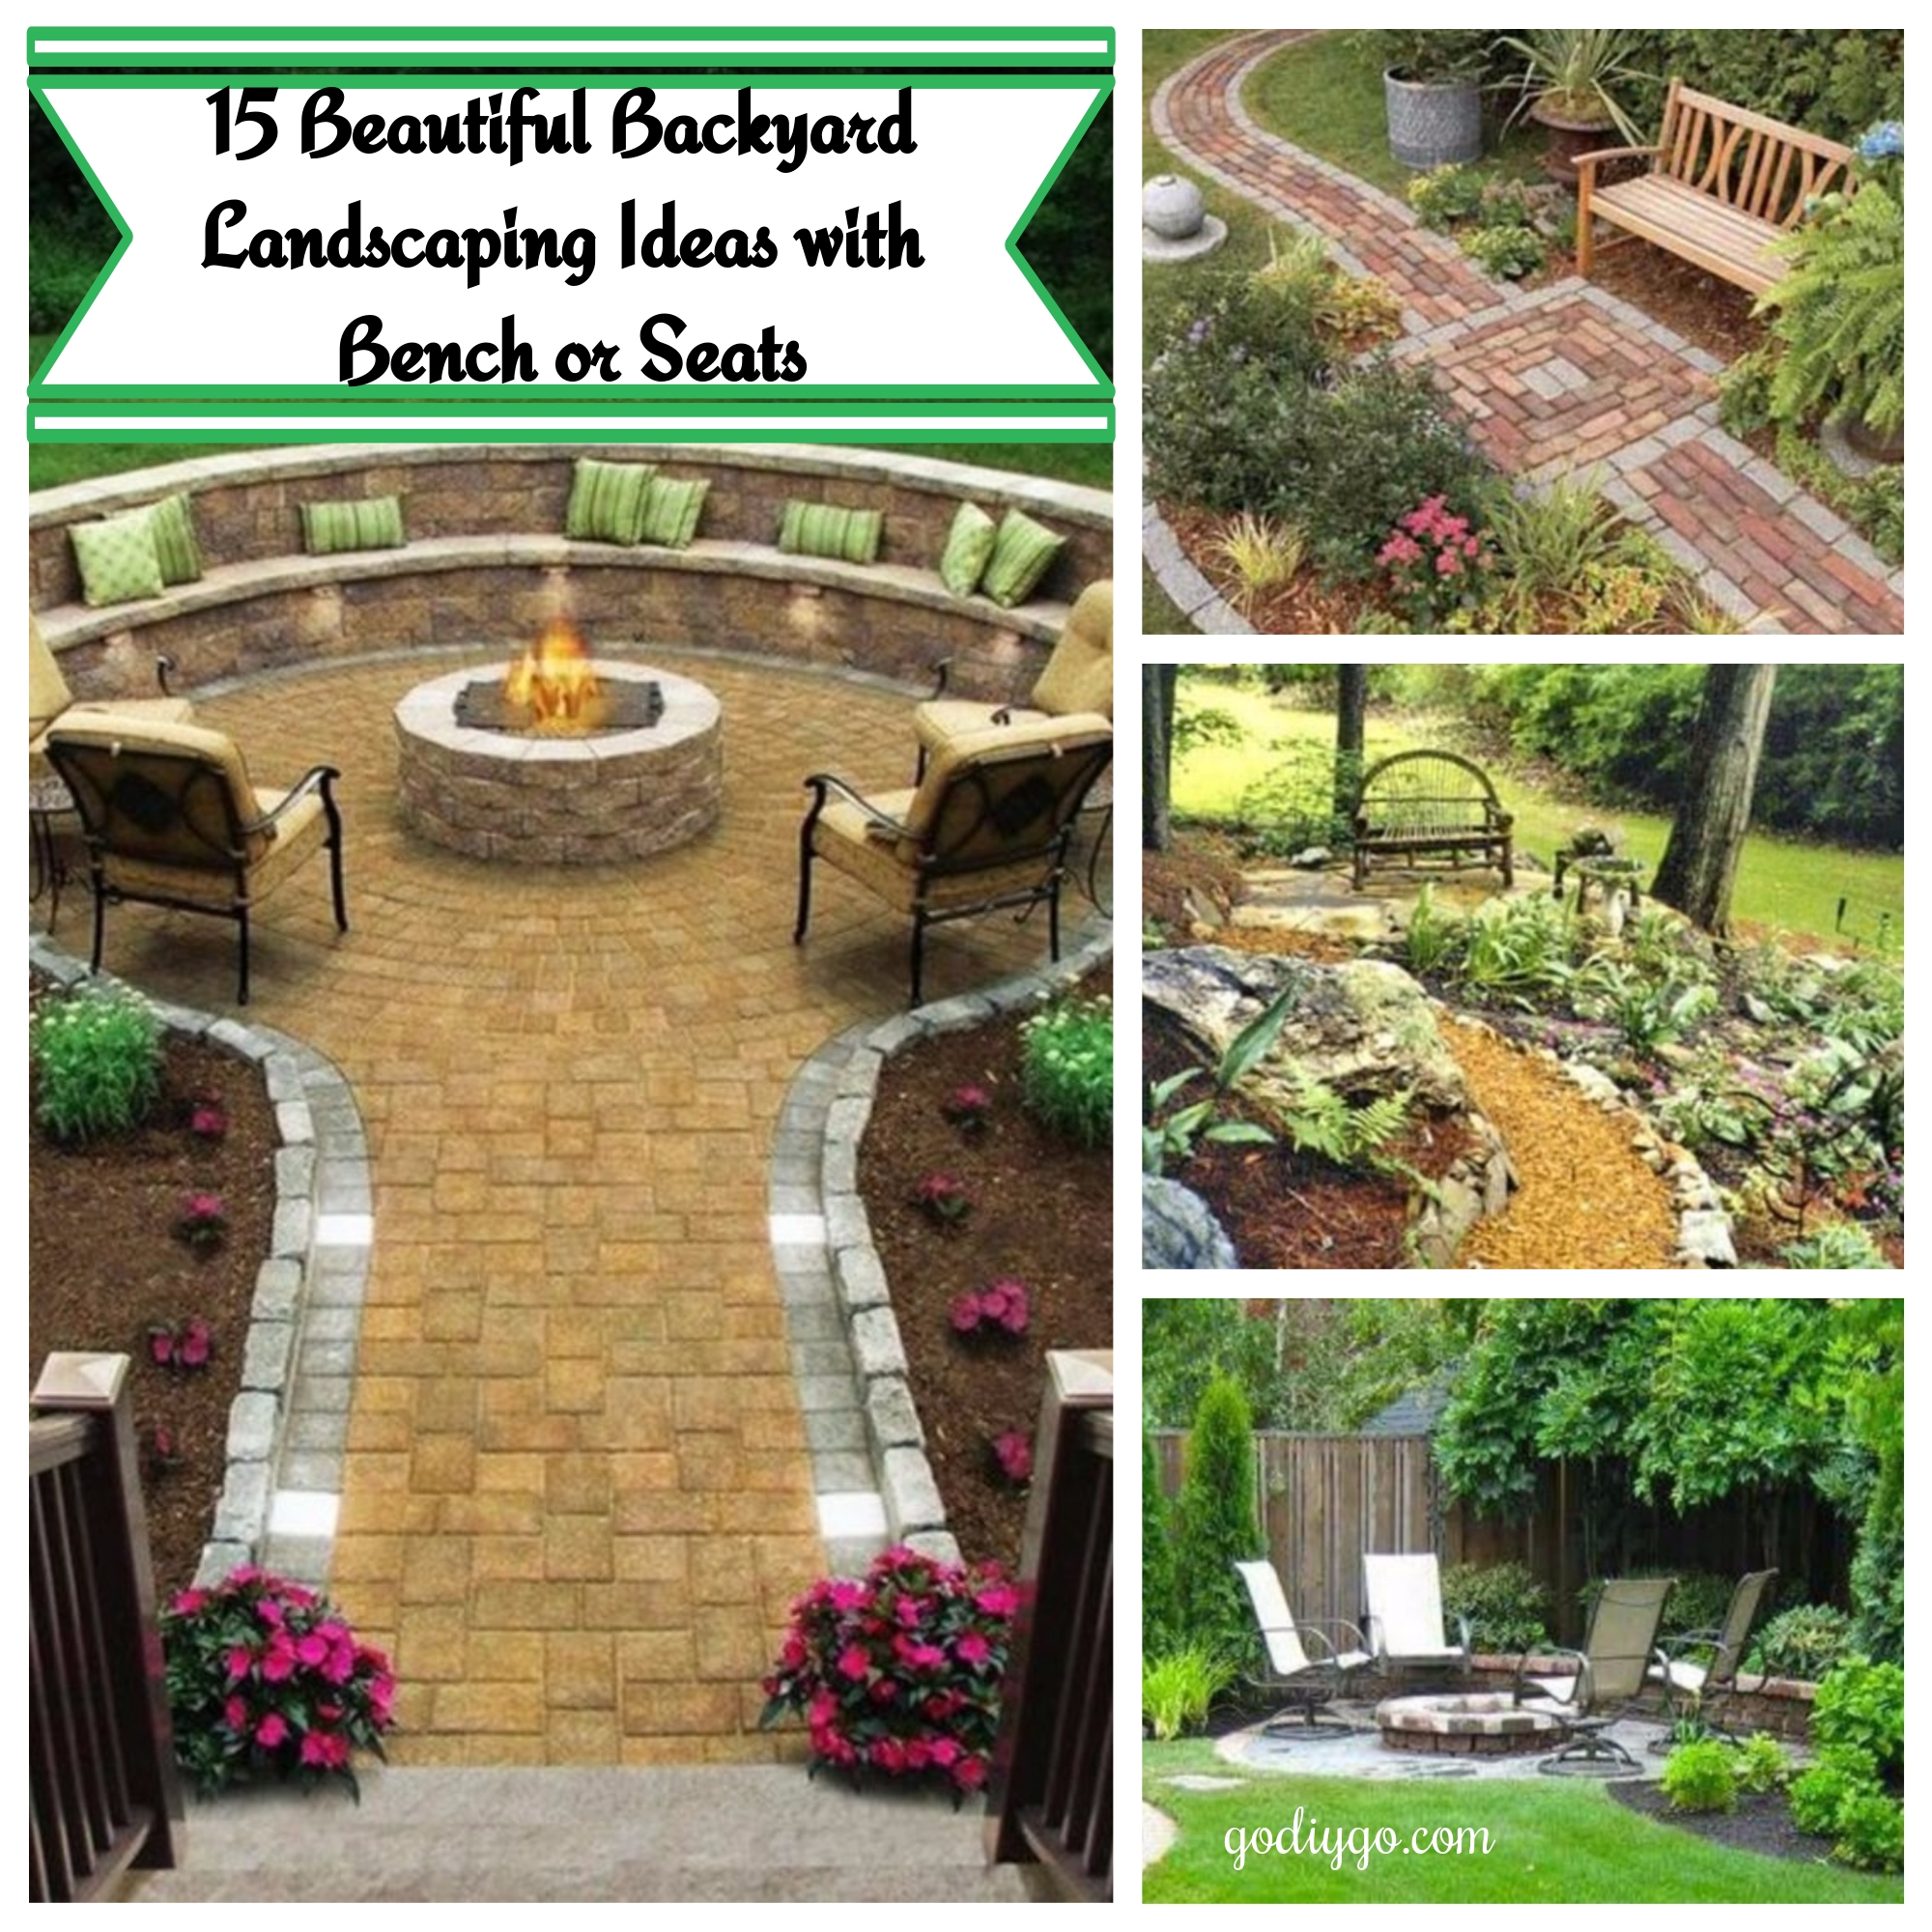 Beautiful Backyard Landscaping Ideas 15 beautiful backyard landscaping ideas with bench or seats